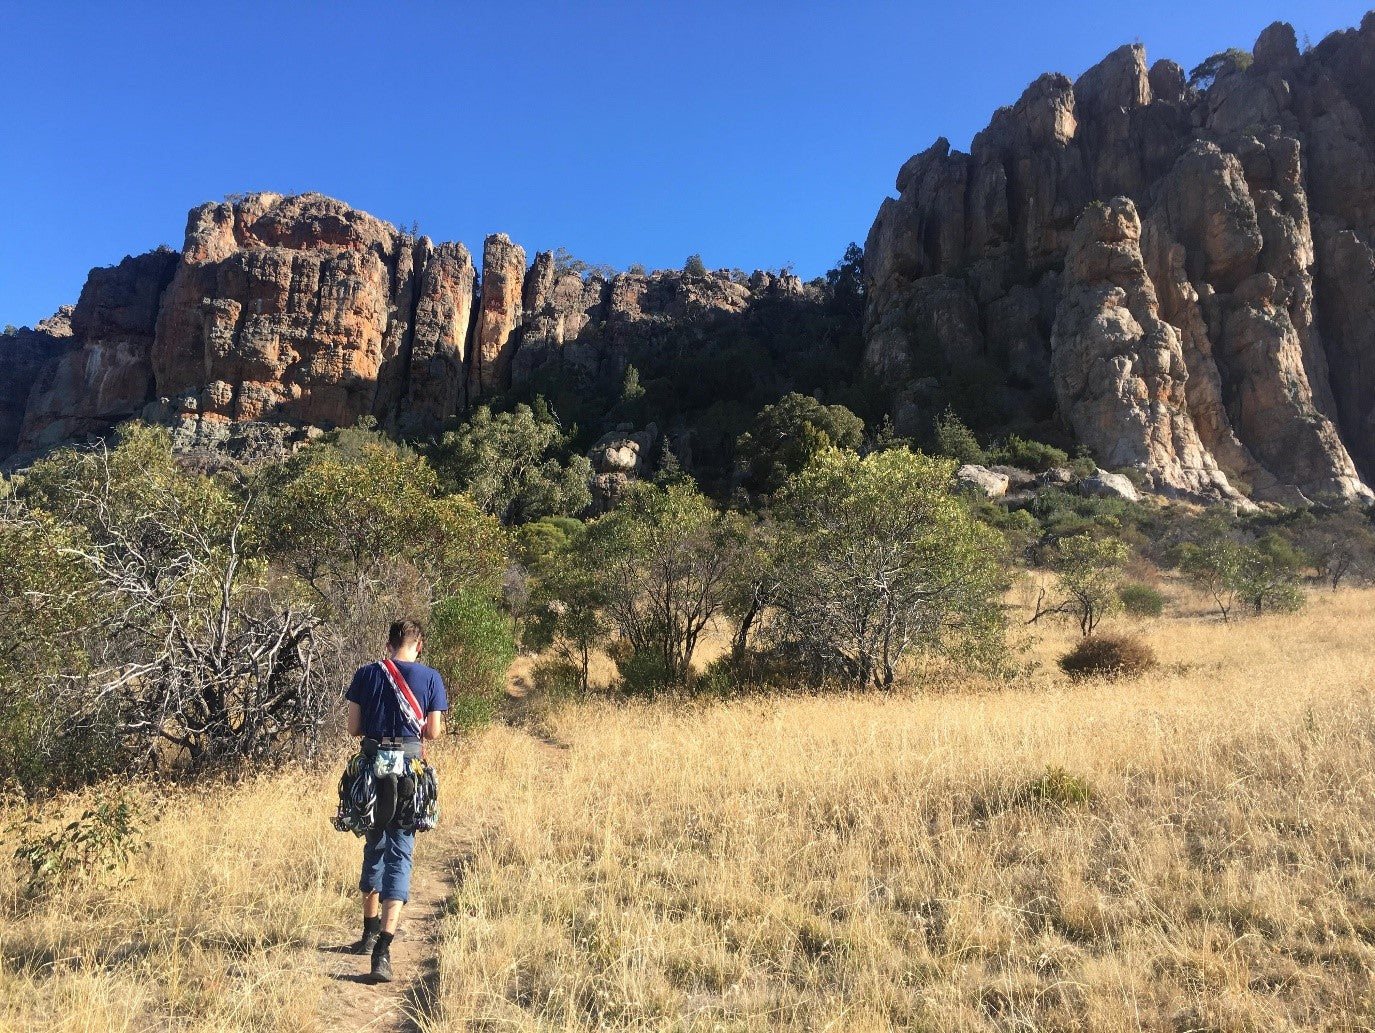 Walking up to the Organ Pipes